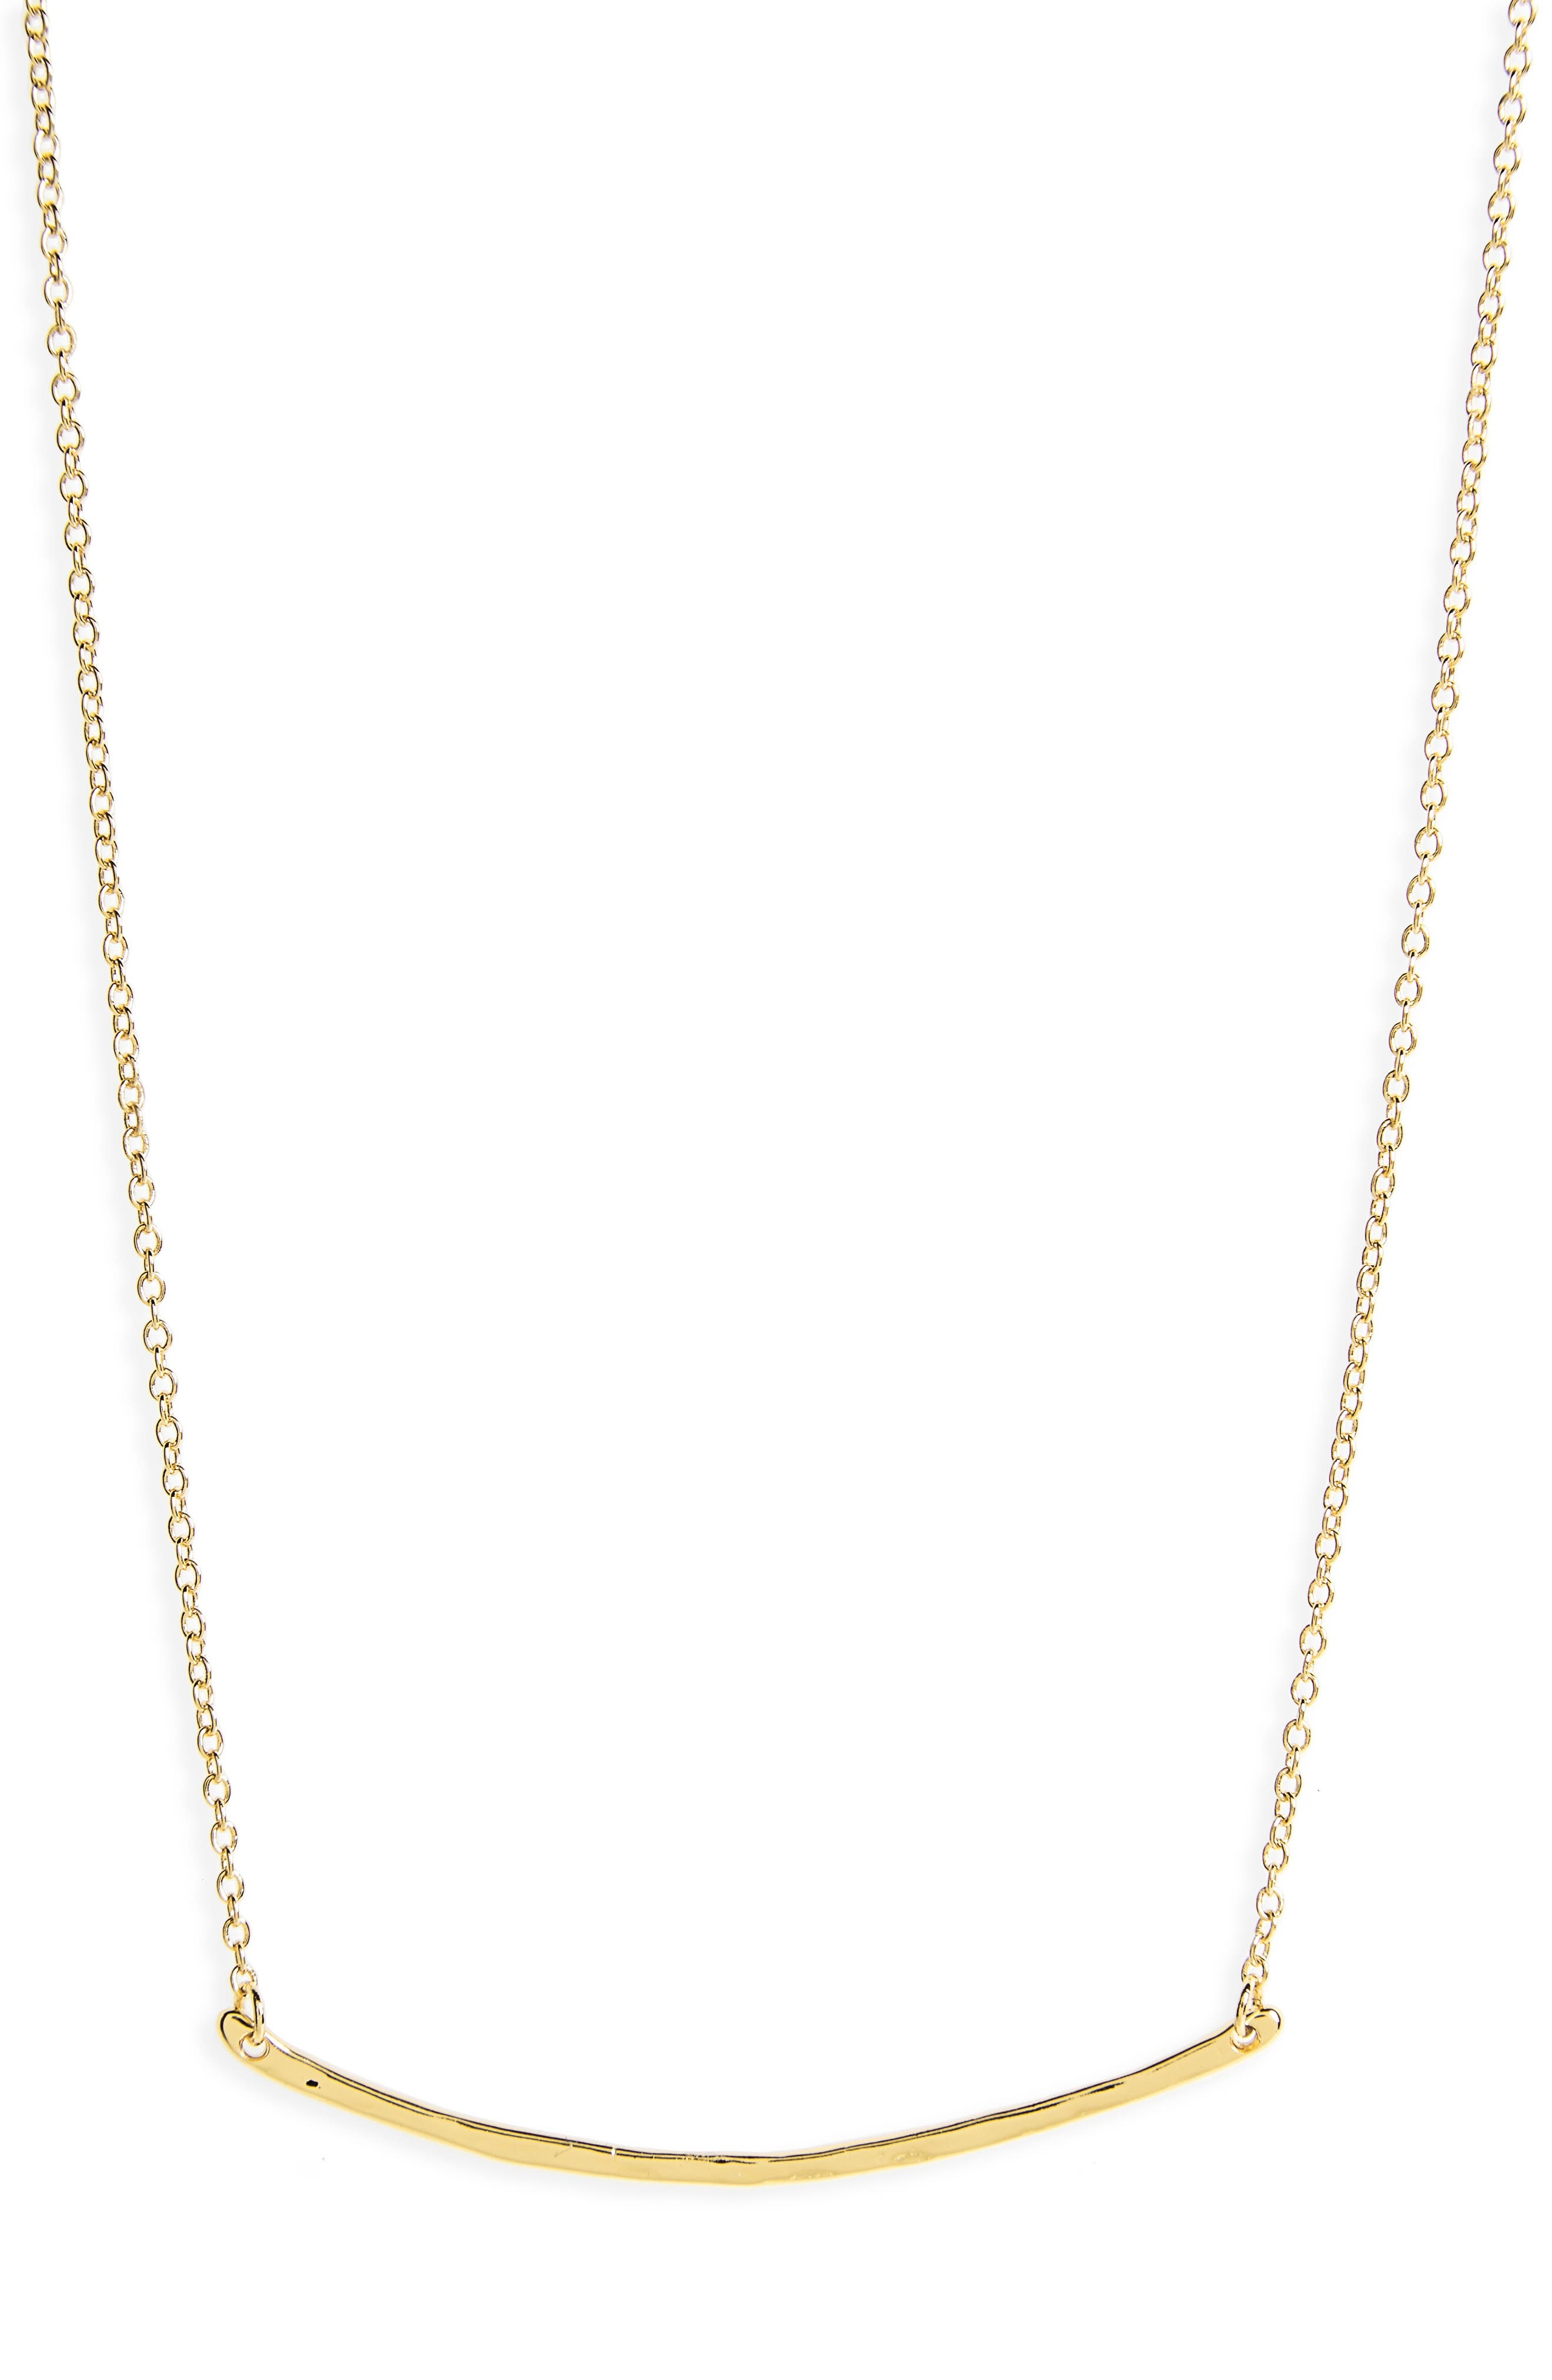 Womens necklaces gorjana taner bar small necklace audiocablefo